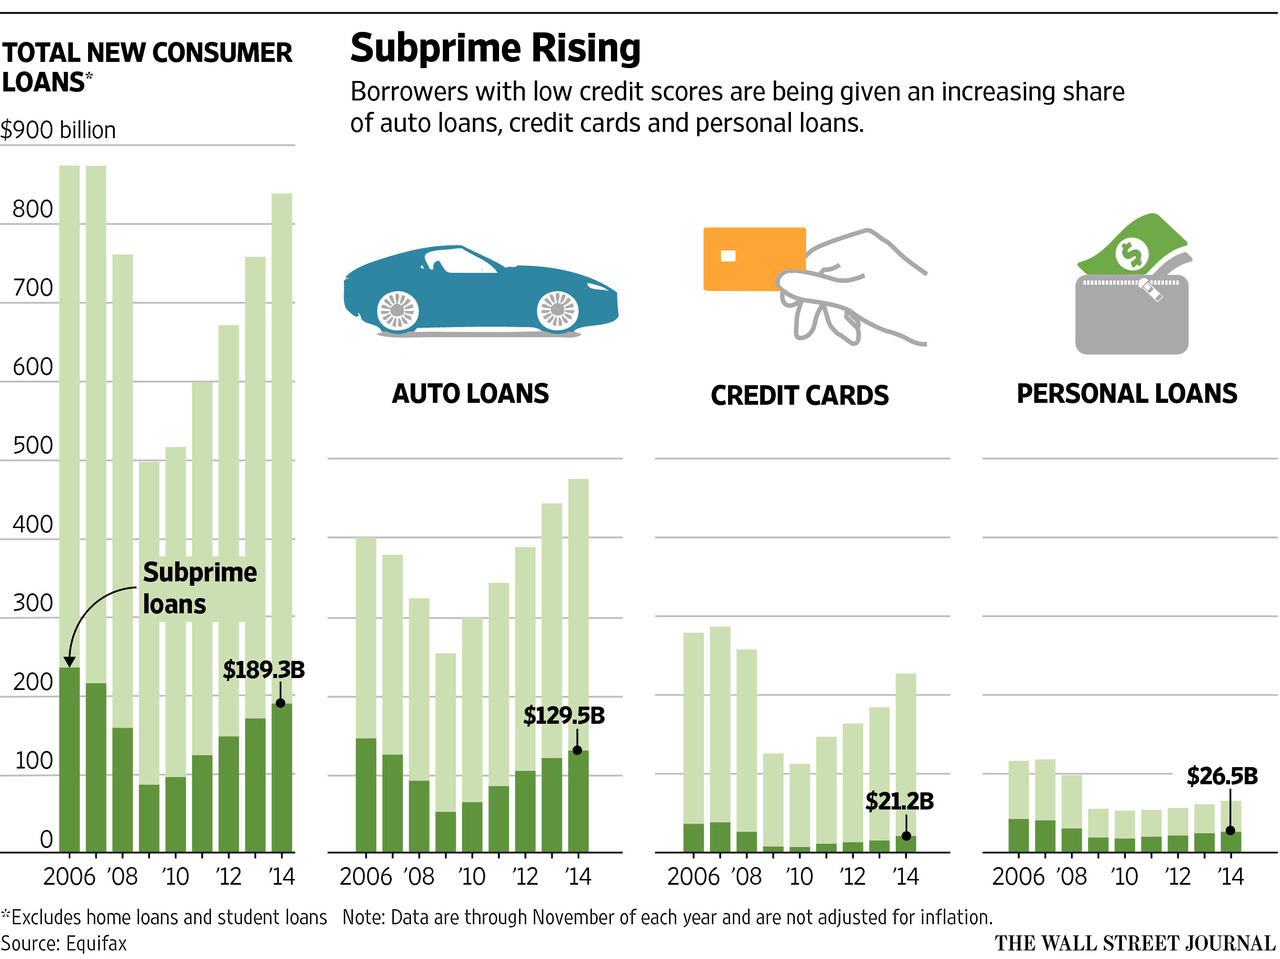 WSJ charts for subprime loans 2006-2014